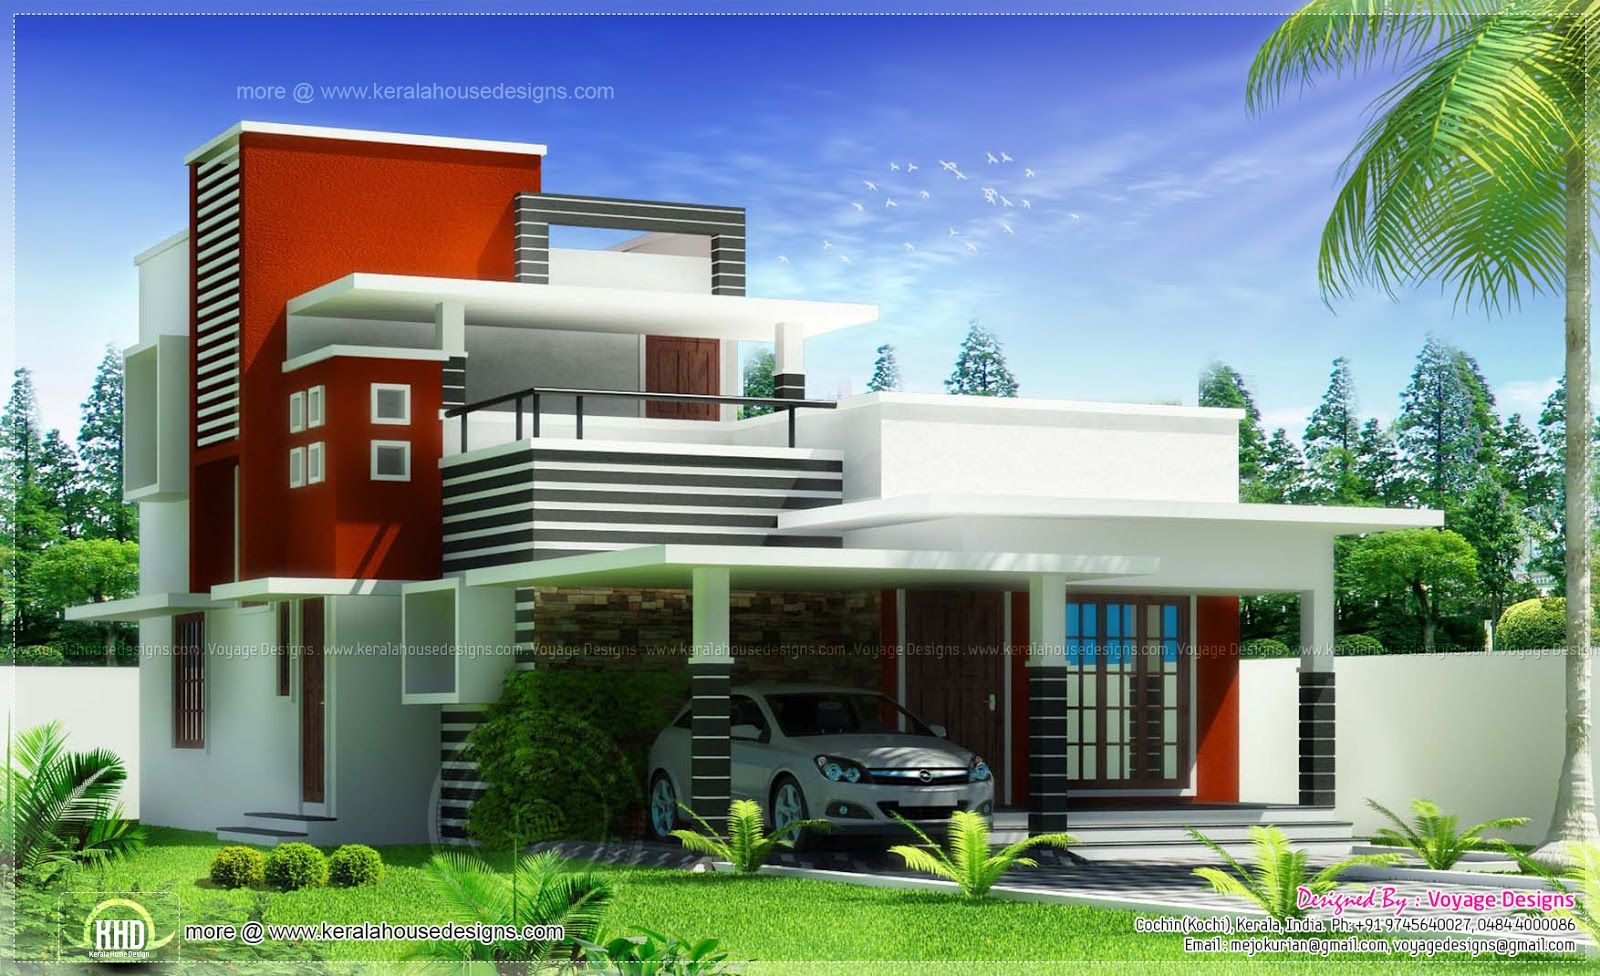 Kerala house designs architecture pinterest kerala for Kerala modern house designs